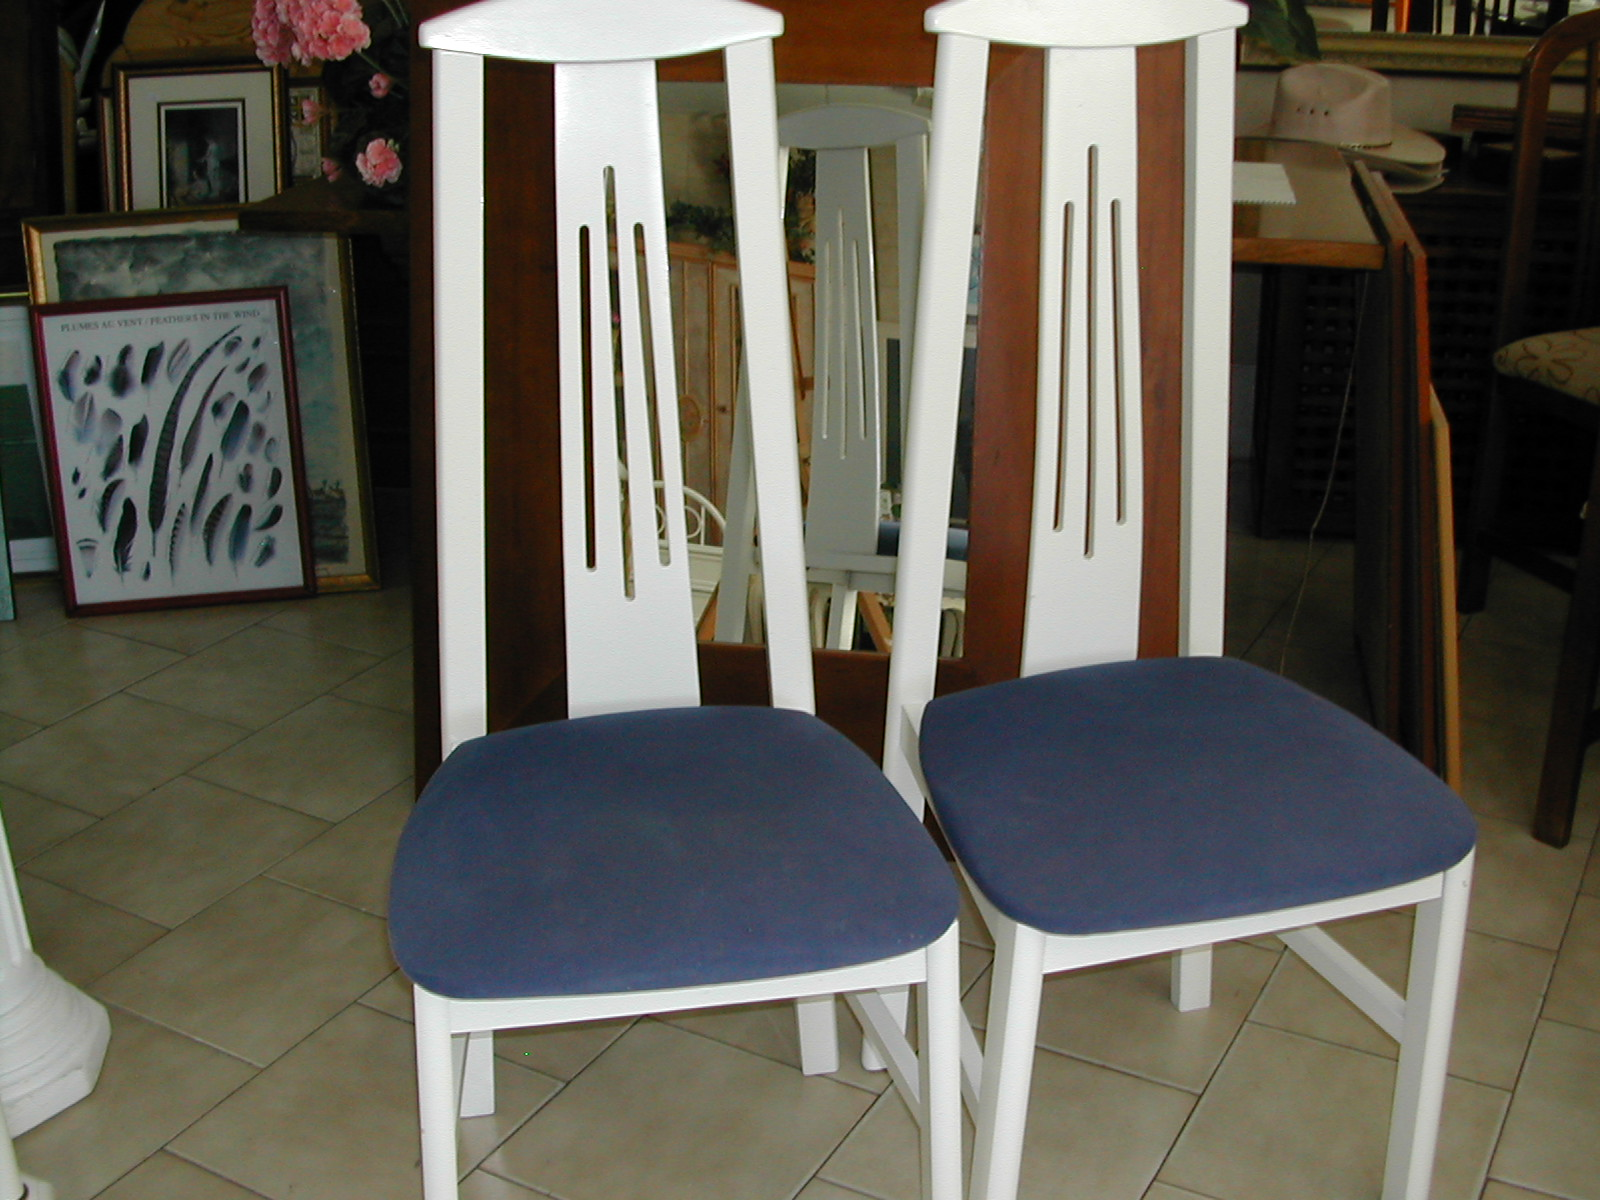 Beau 2 White High Back Dining Chairs With Blue Seat Cushions